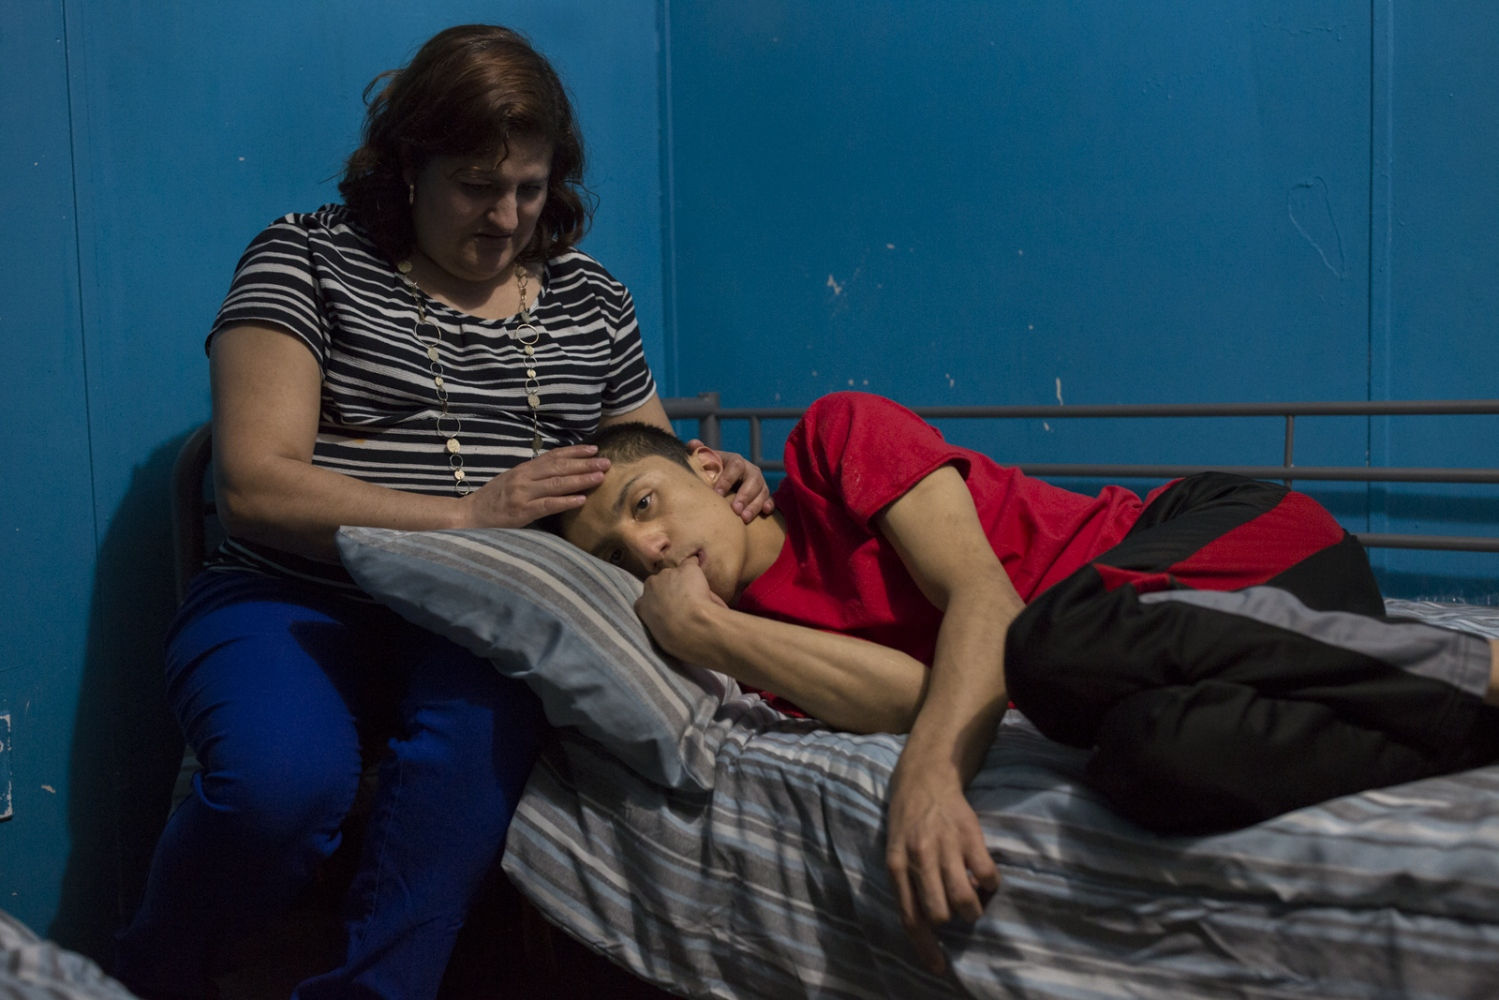 Veronica Castro caresses her son Juan Pablo in the bedroom that he shares with his 2 brothers. Juan Pablo has brain damage resulting from complications during a heart surgery when he was three years old and has been dependant on his mother ever since.